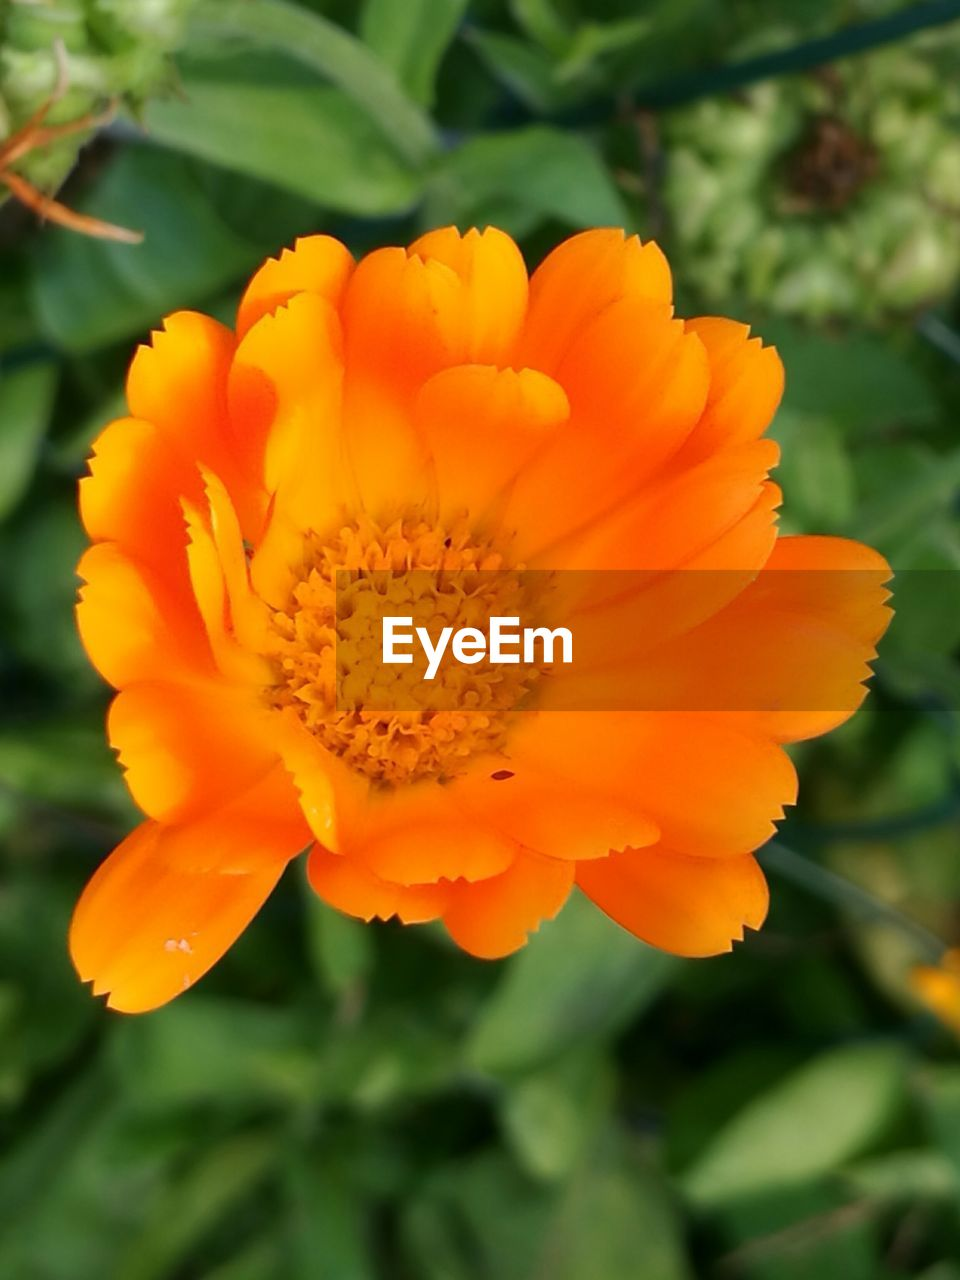 flower, beauty in nature, yellow, nature, petal, fragility, plant, flower head, freshness, orange color, growth, vibrant color, outdoors, close-up, no people, blooming, day, marigold